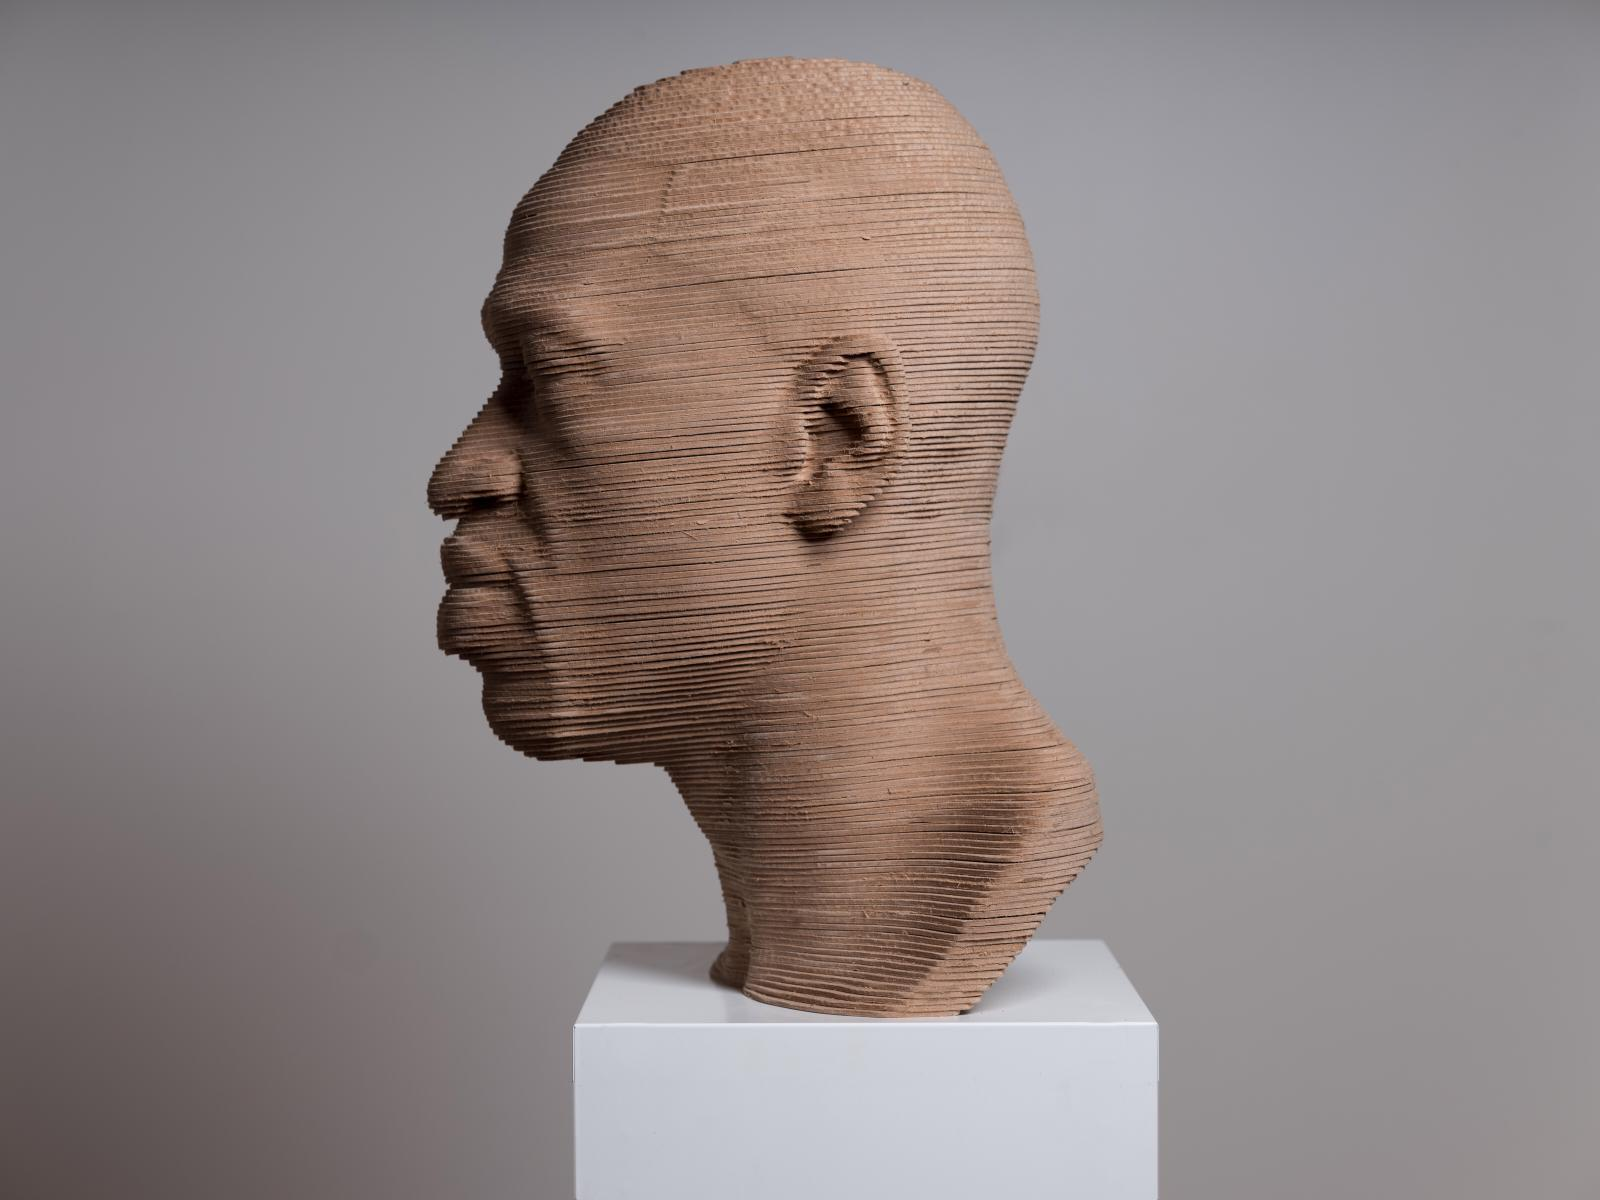 George Floyd Bust Sculpture Looking Left. Made of layered wood on a white marble base.